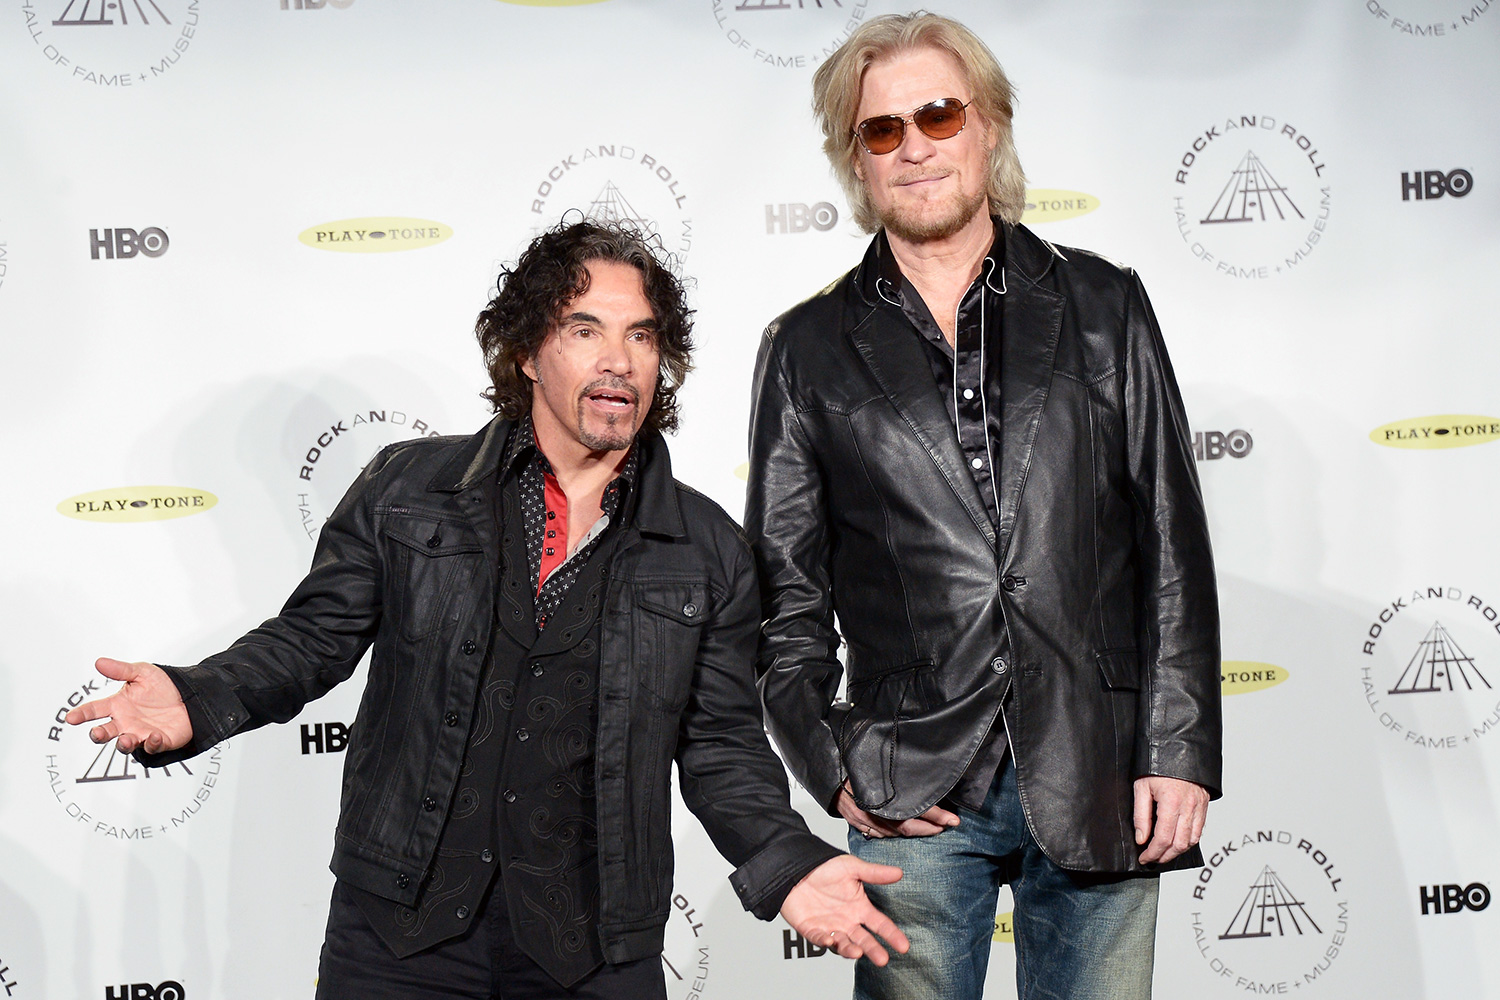 John Oates (L) and Daryl Hall of Hall and Oates attend the 29th Annual Rock And Roll Hall Of Fame Induction Ceremony at Barclays Center of Brooklyn on April 10, 2014 in New York City